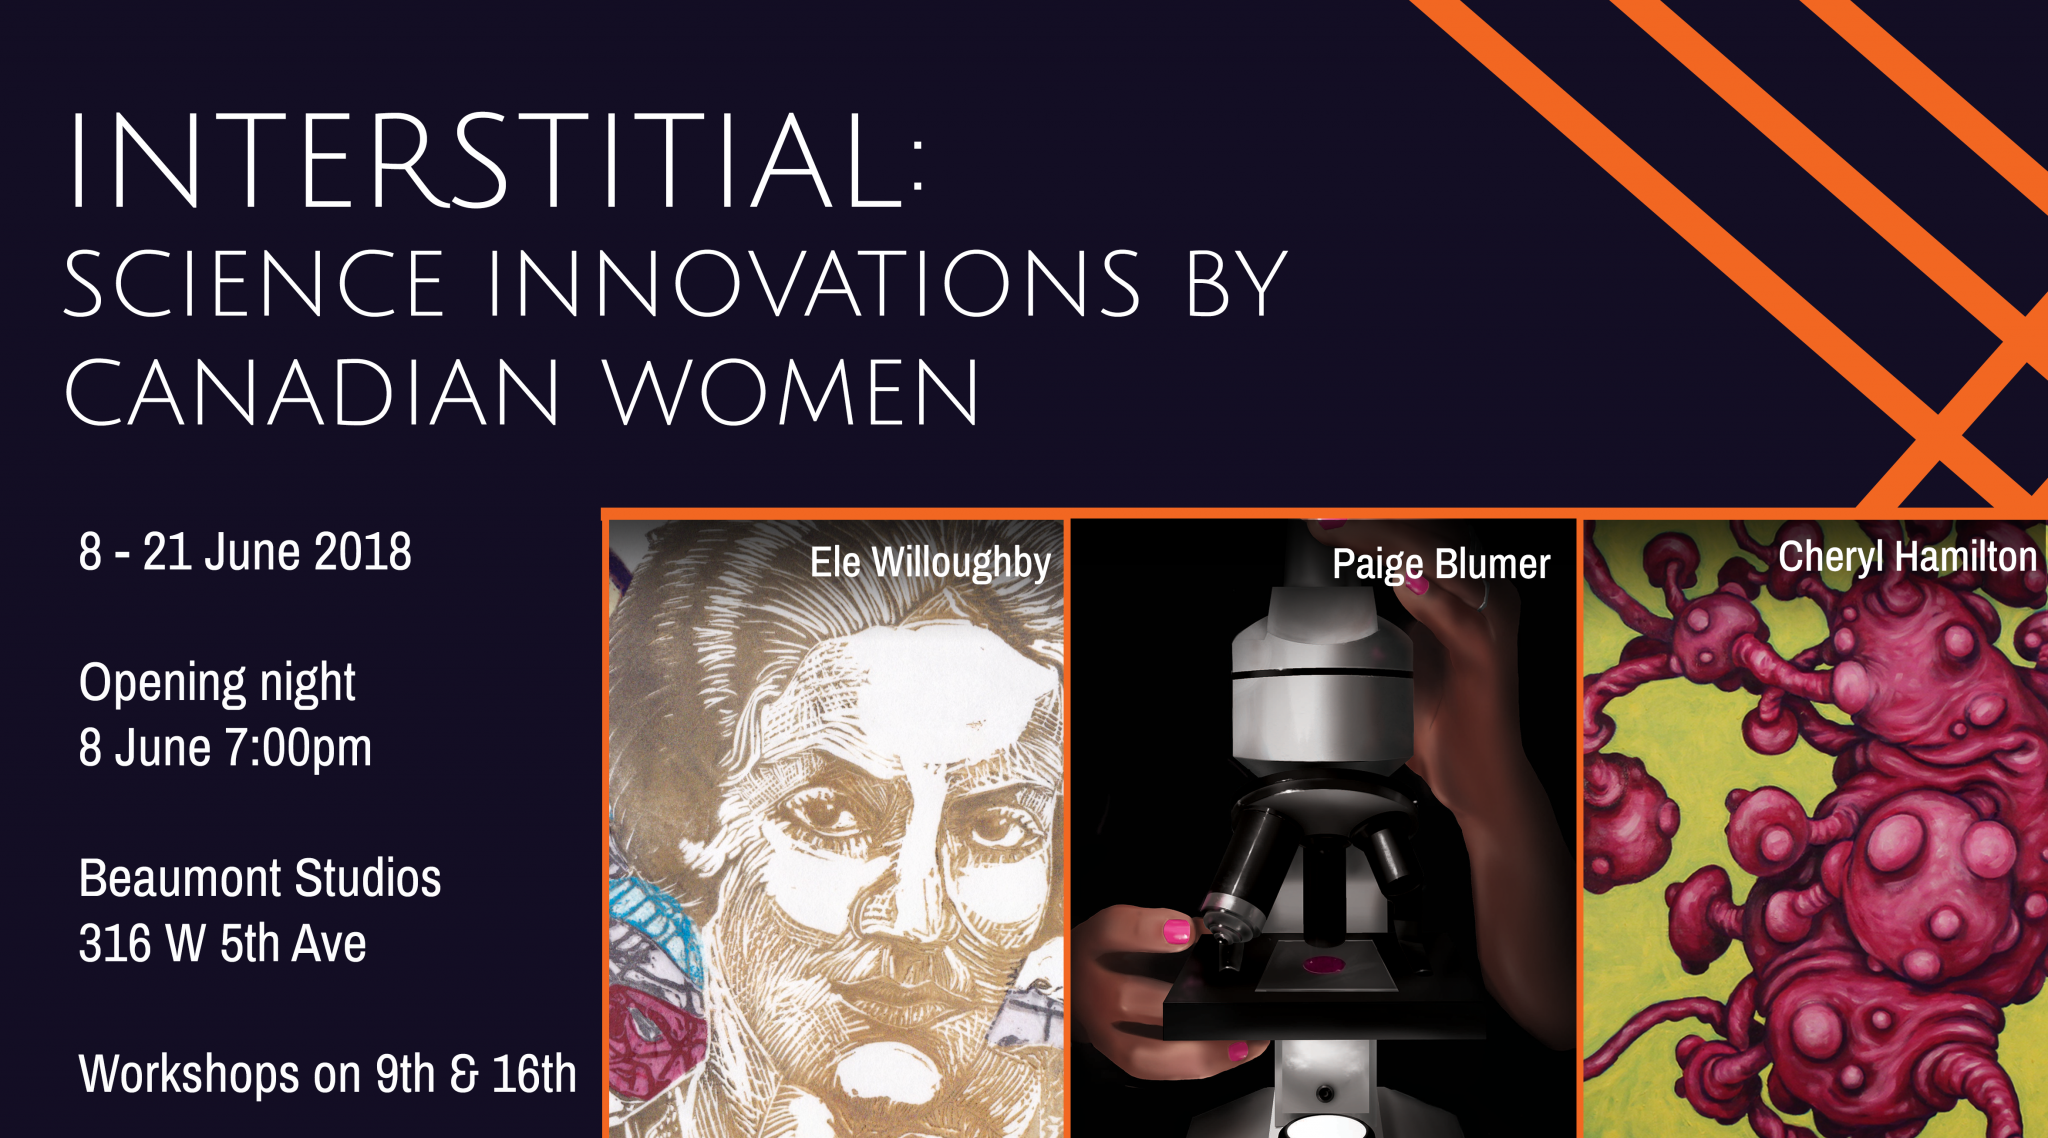 Interstitial: Science Innovations by Canadian Women